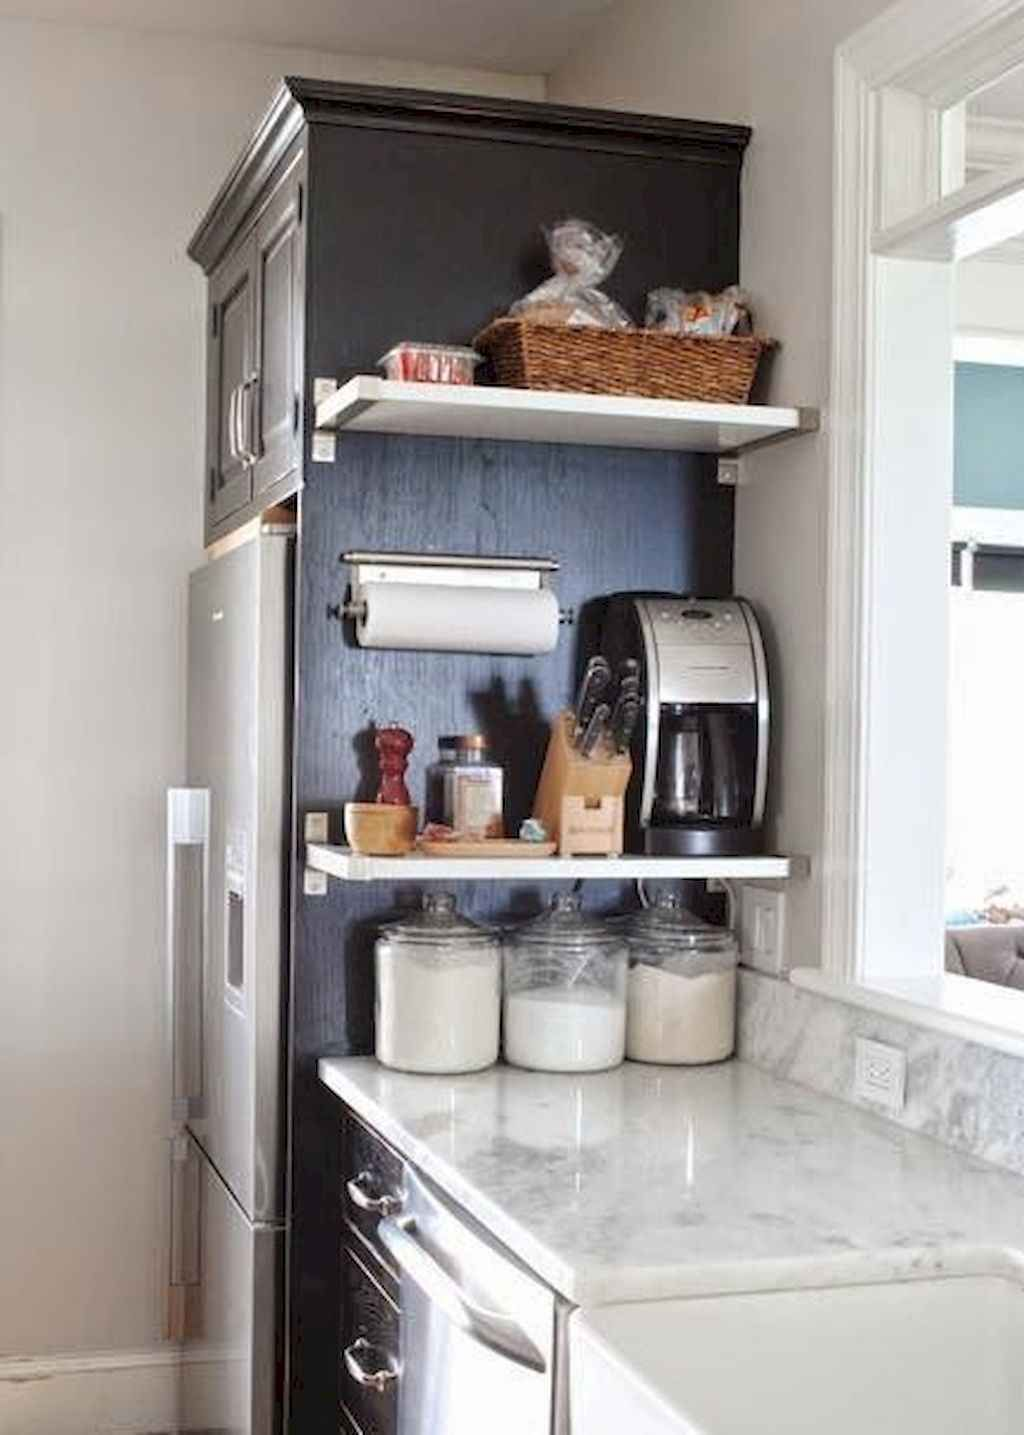 38 Creative Storage Solutions For Small Spaces Awesome Diy Ideas Kitchen Without Pantry No Pantry Solutions Kitchen Design Small